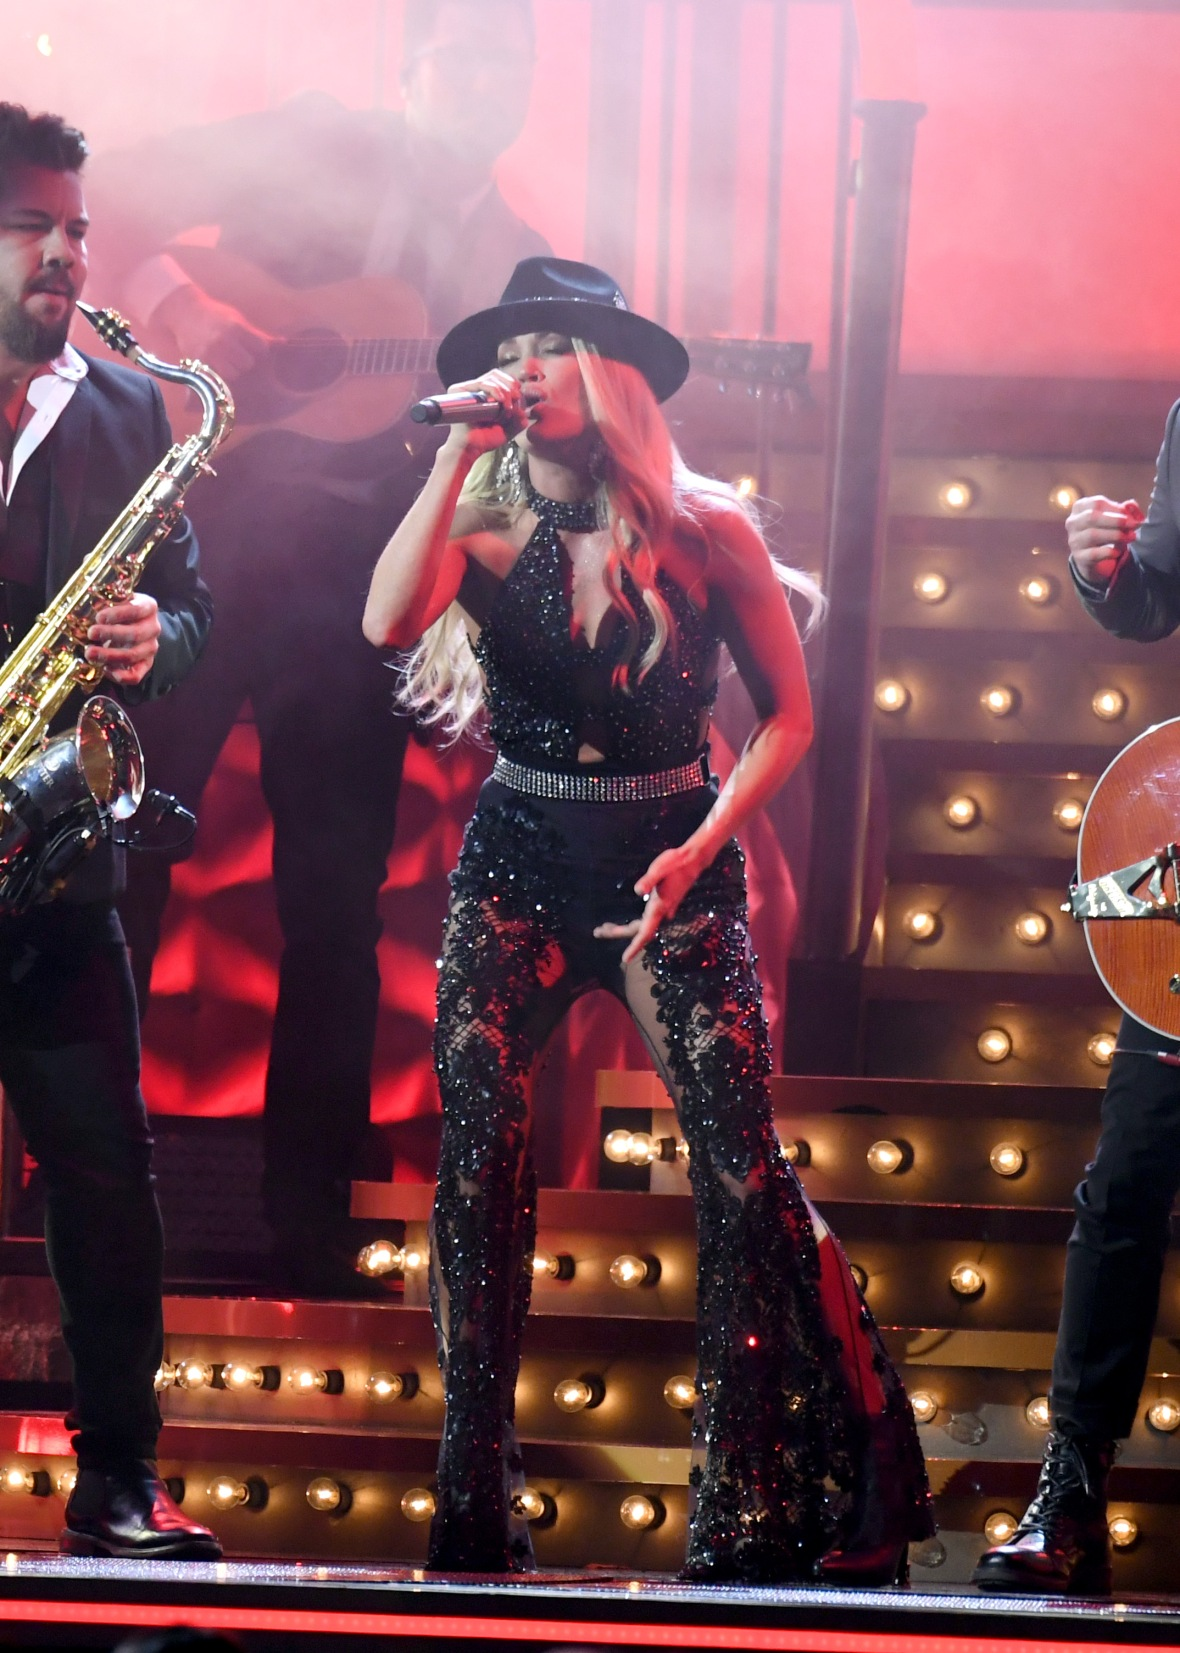 Carrie Underwood Performance at the CMAs 2019